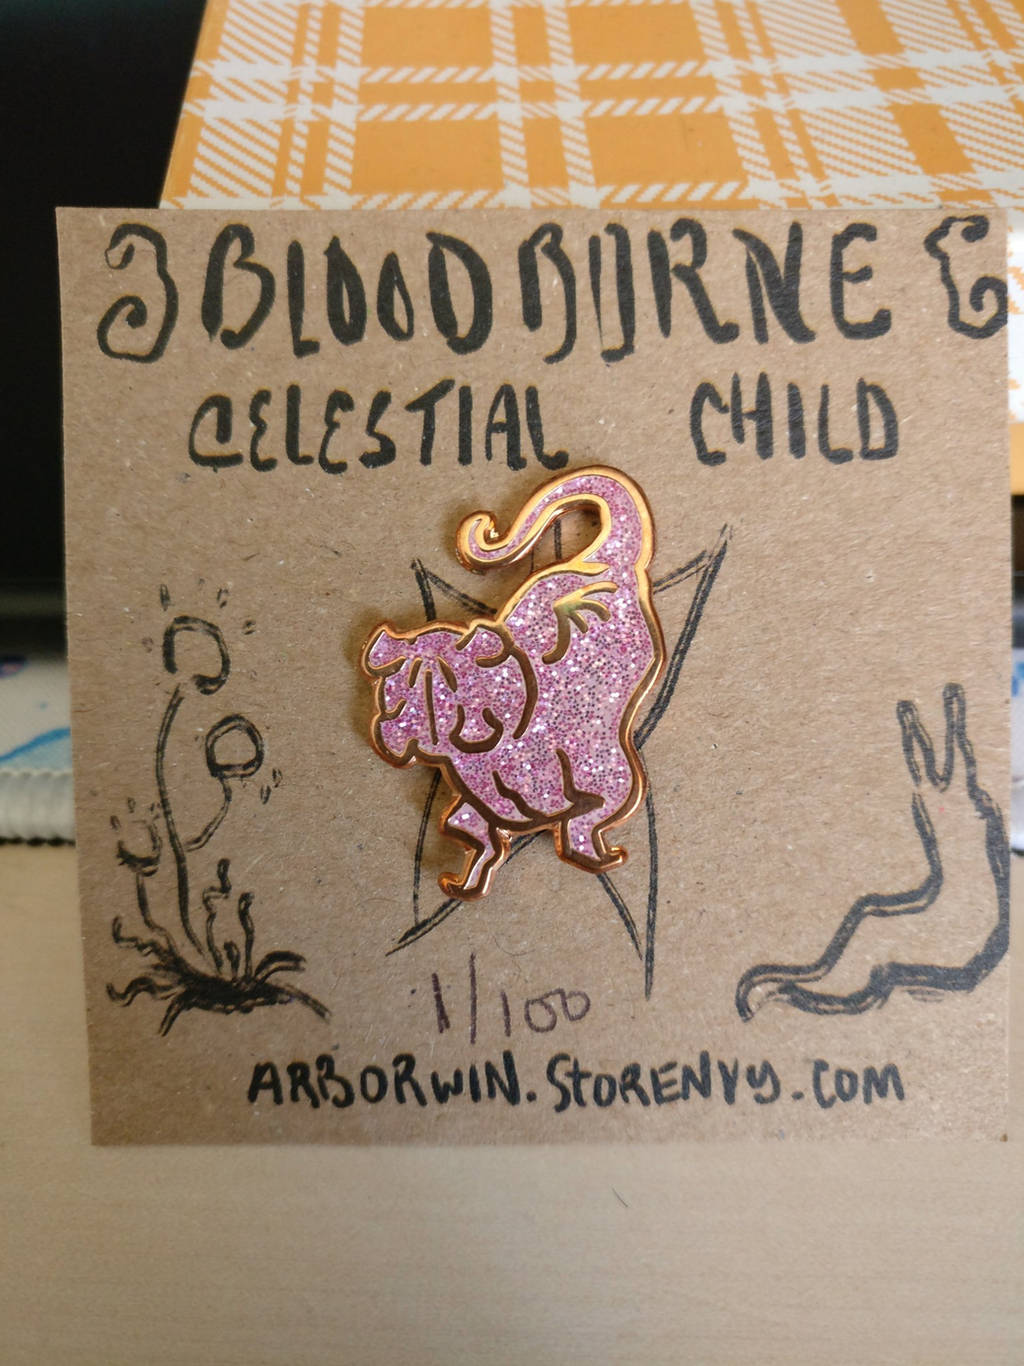 Bloodborne CELESTIAL CHILD enamel pin by callanerial